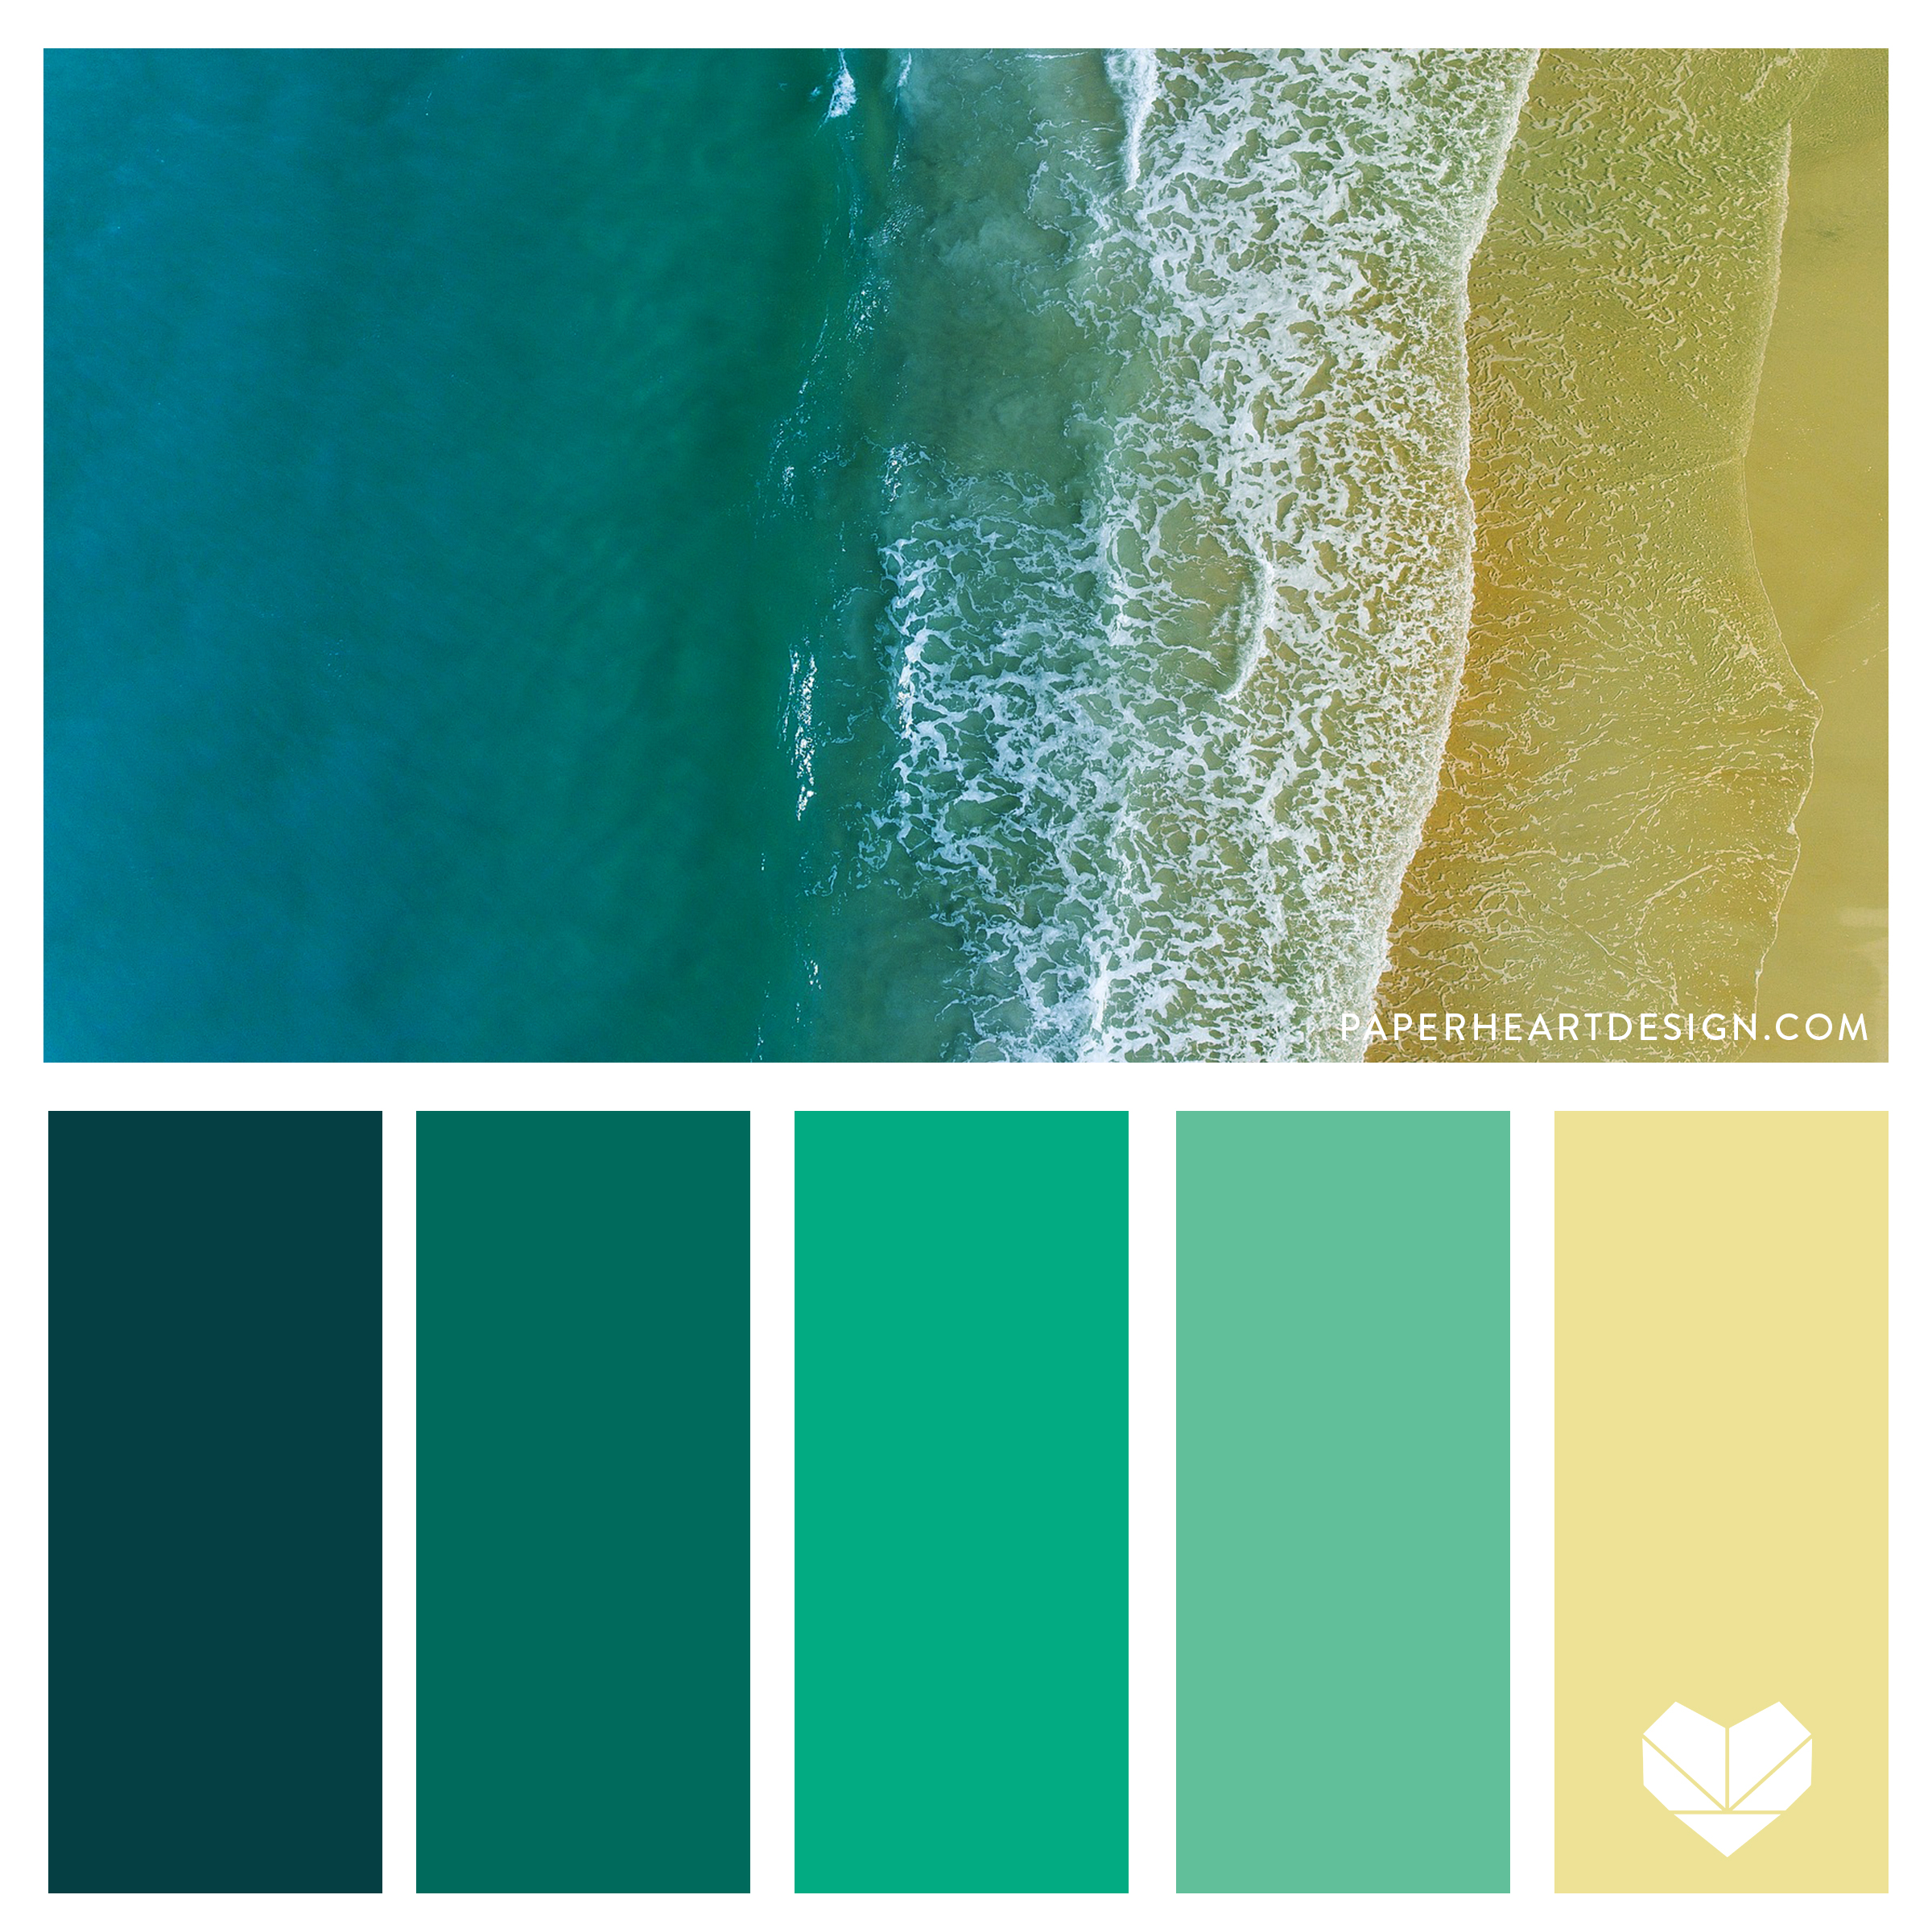 Sand + Surf Jewel tone Color Palette. Teal, Mint, Aqua, Tan. Bold + Elegant.